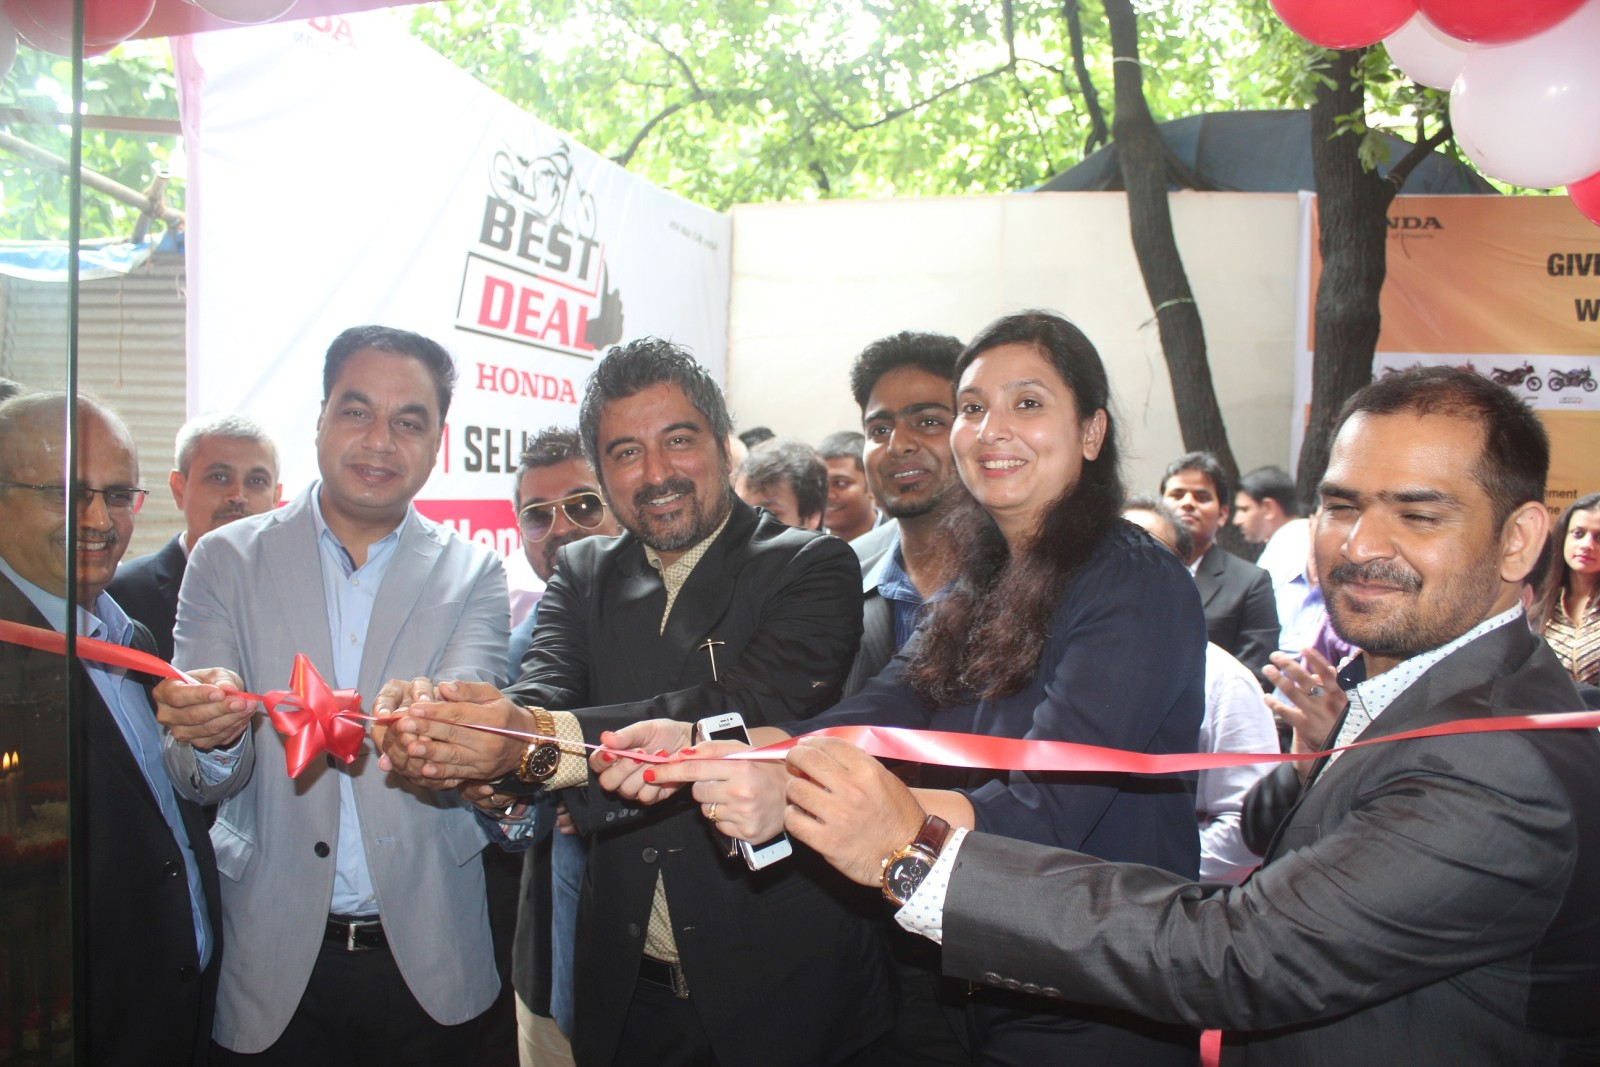 Honda 2Wheeler inaugurates its 100th Best Deal outlet (2)